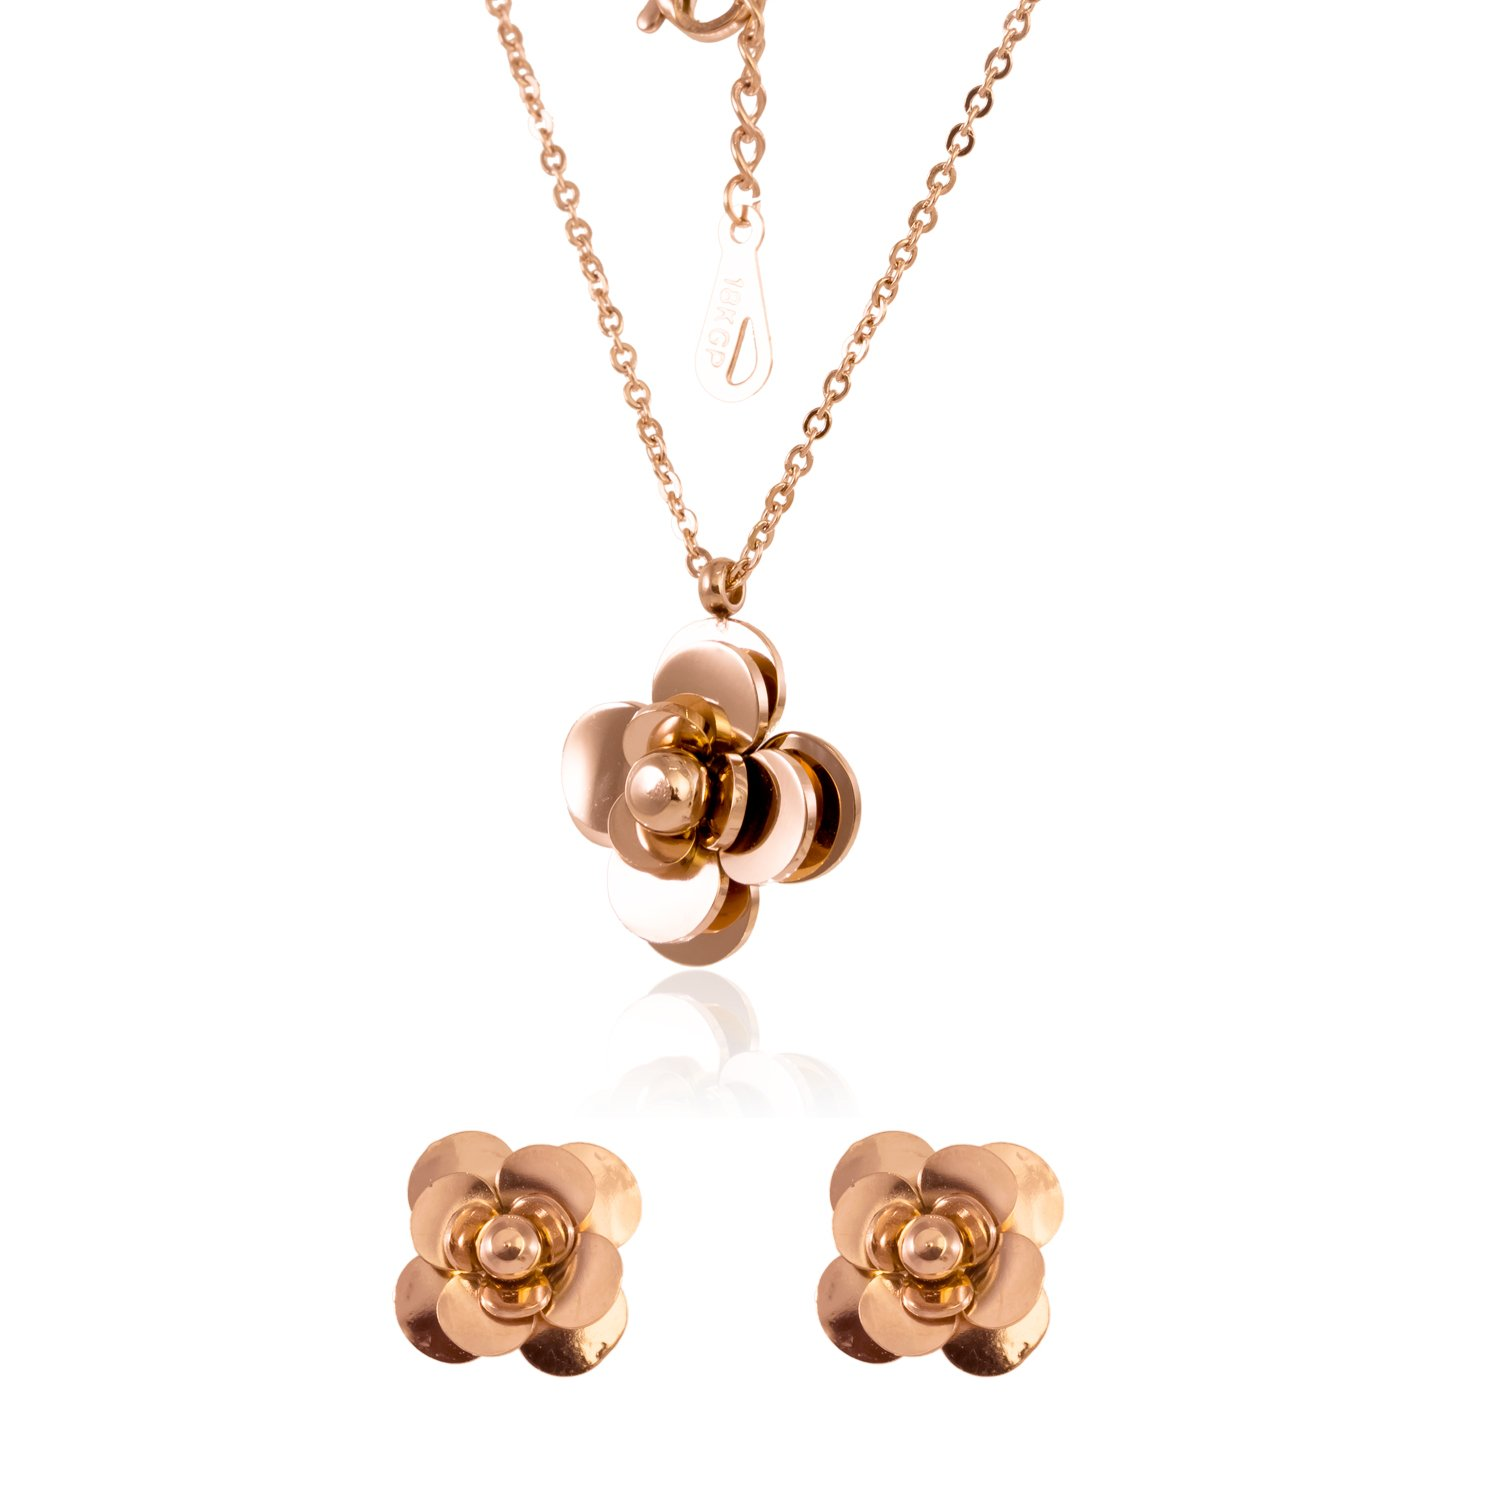 ISAACSONG.DESIGN Stainless Steel Inspirational Statement Charm Pendant Necklace and Earring Jewelry Set for Women and Girl (Love Camellia Flower Set)